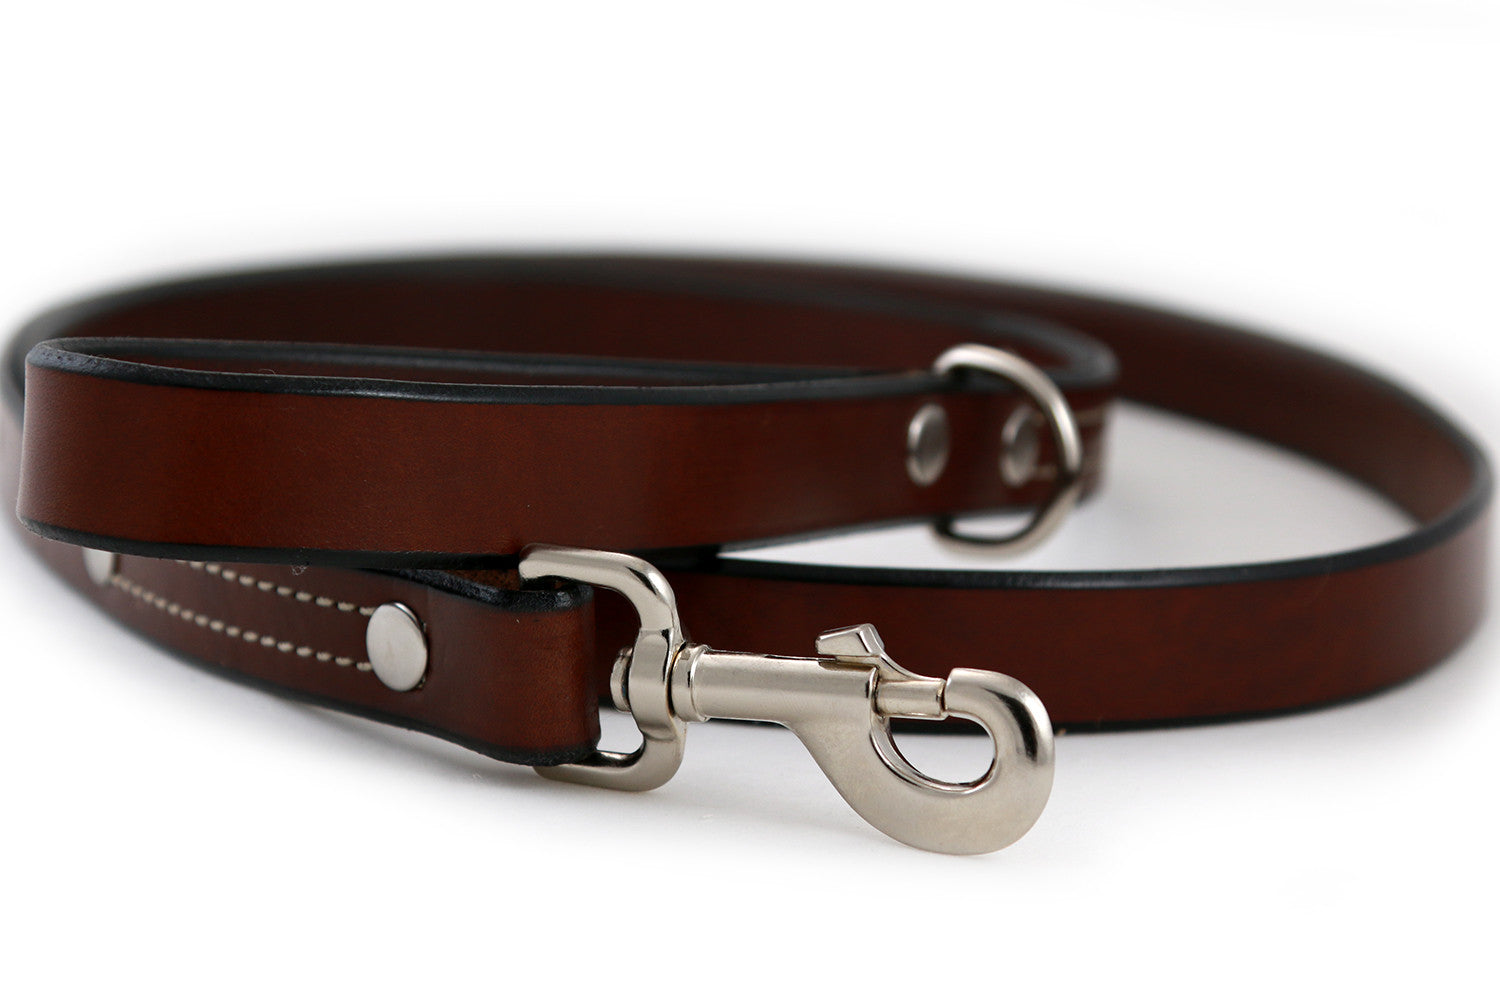 Latigo Leather Dog Leash 1 Inch Wide in Brown or Black